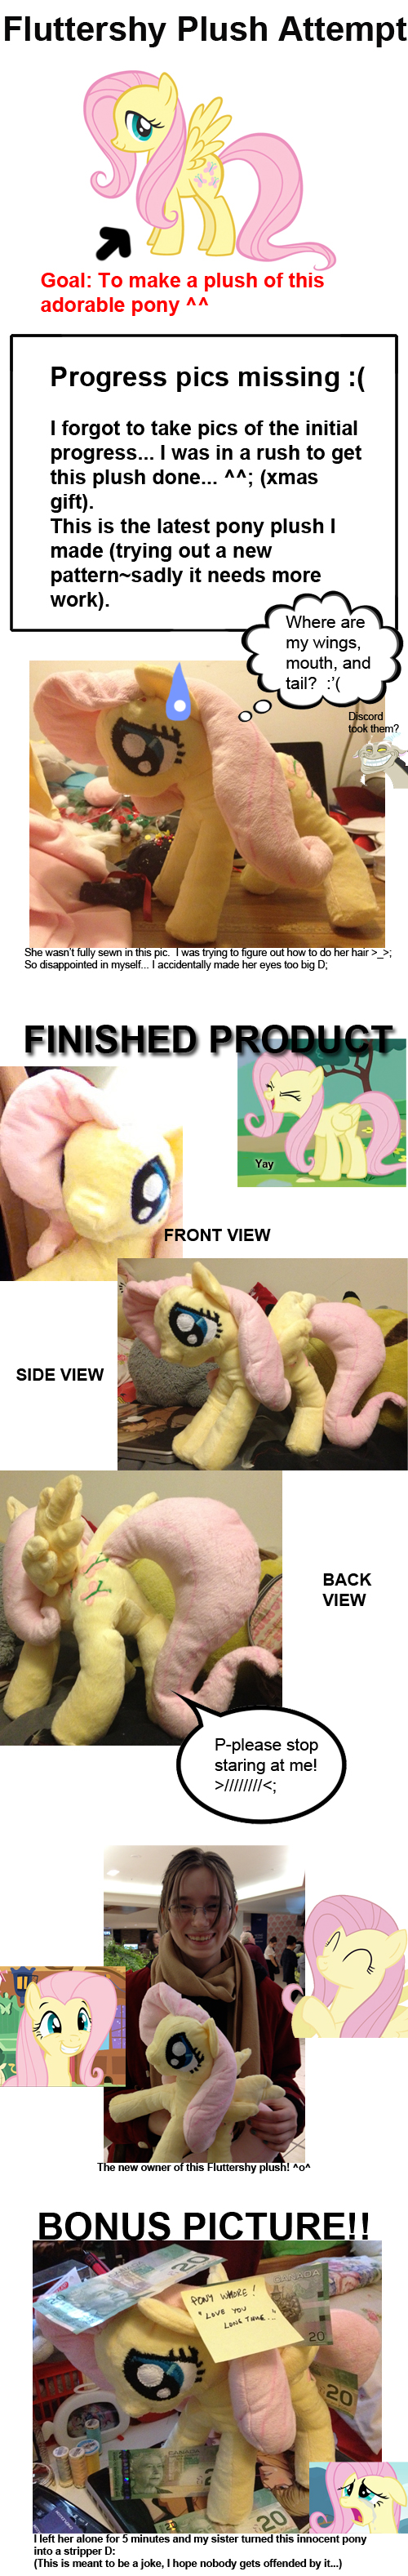 Fluttershy Plush Attempt by Kitara88